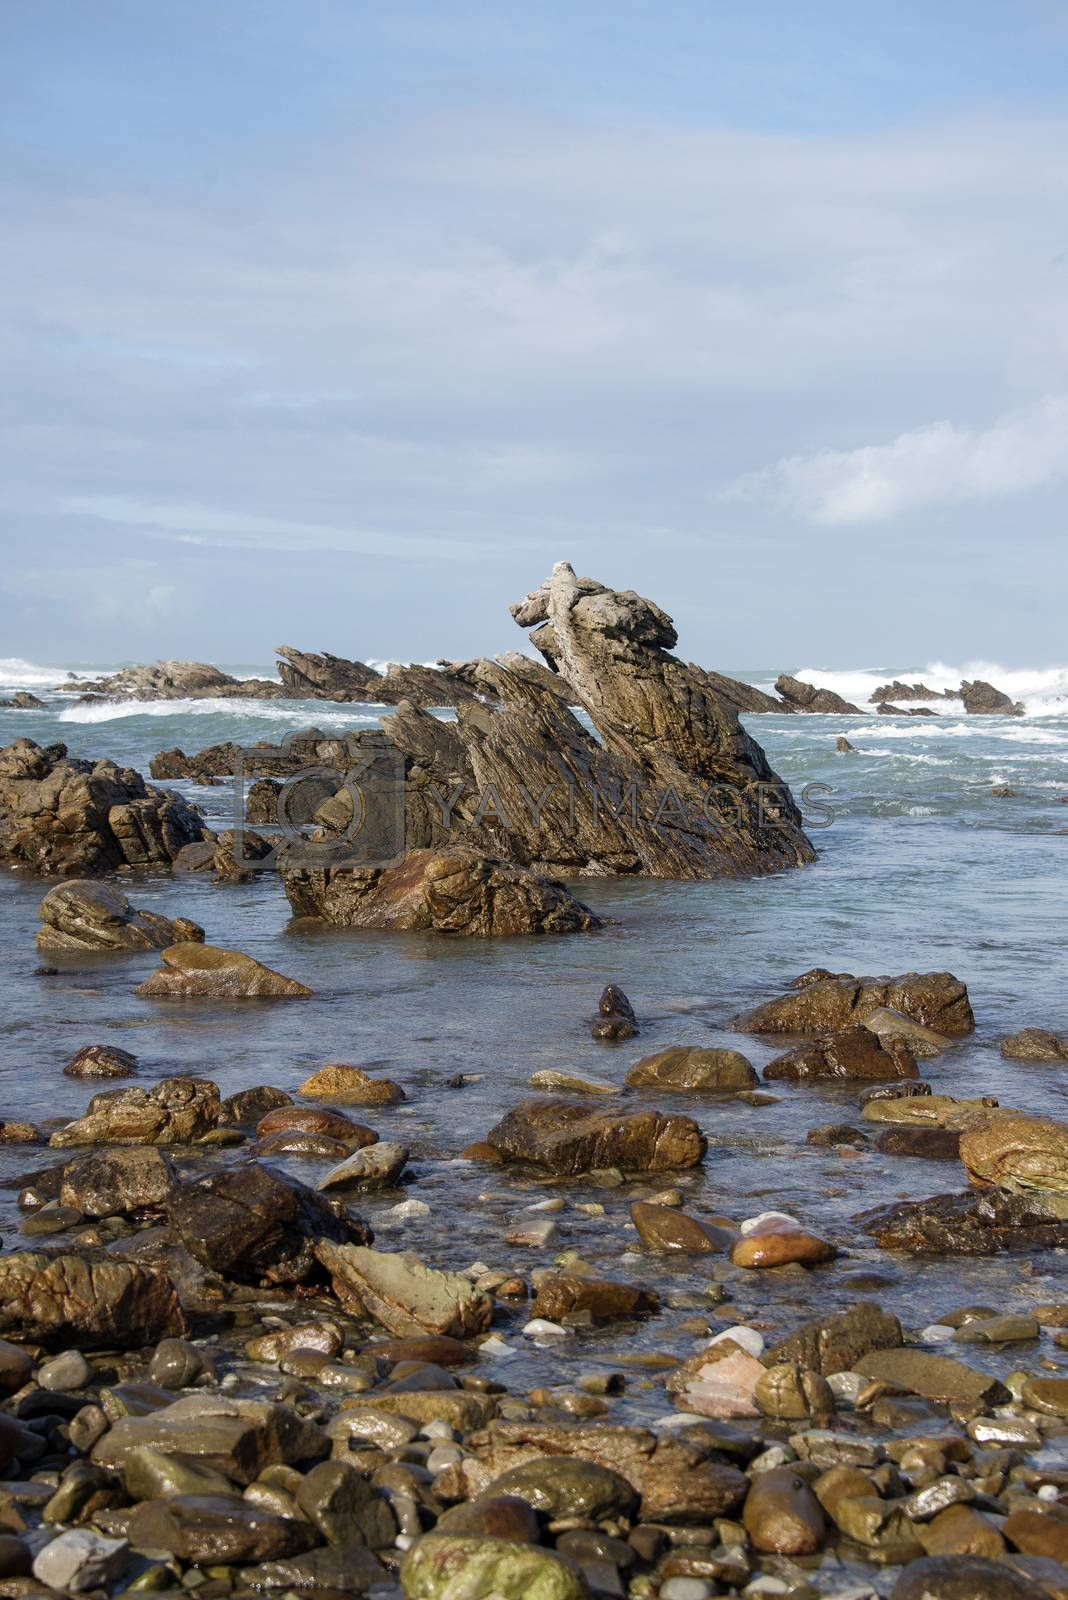 Waves breaking on rocks at Cape Agulhas